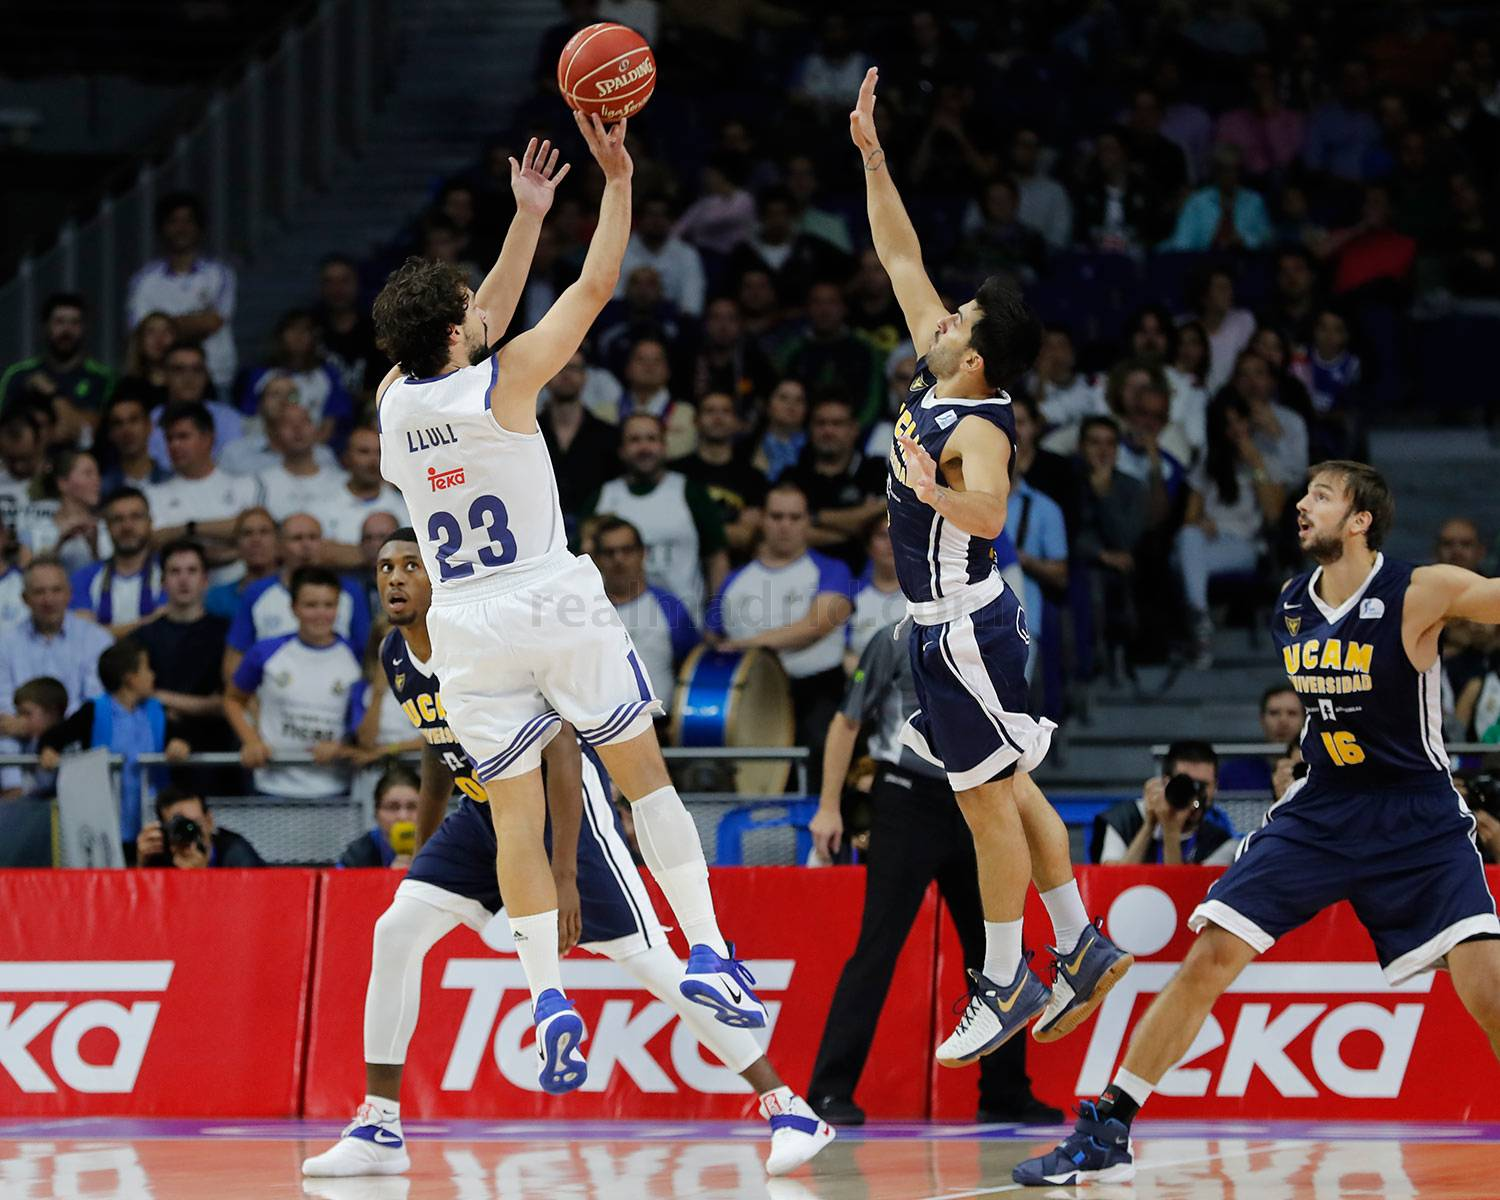 Real Madrid - UCAM Murcia